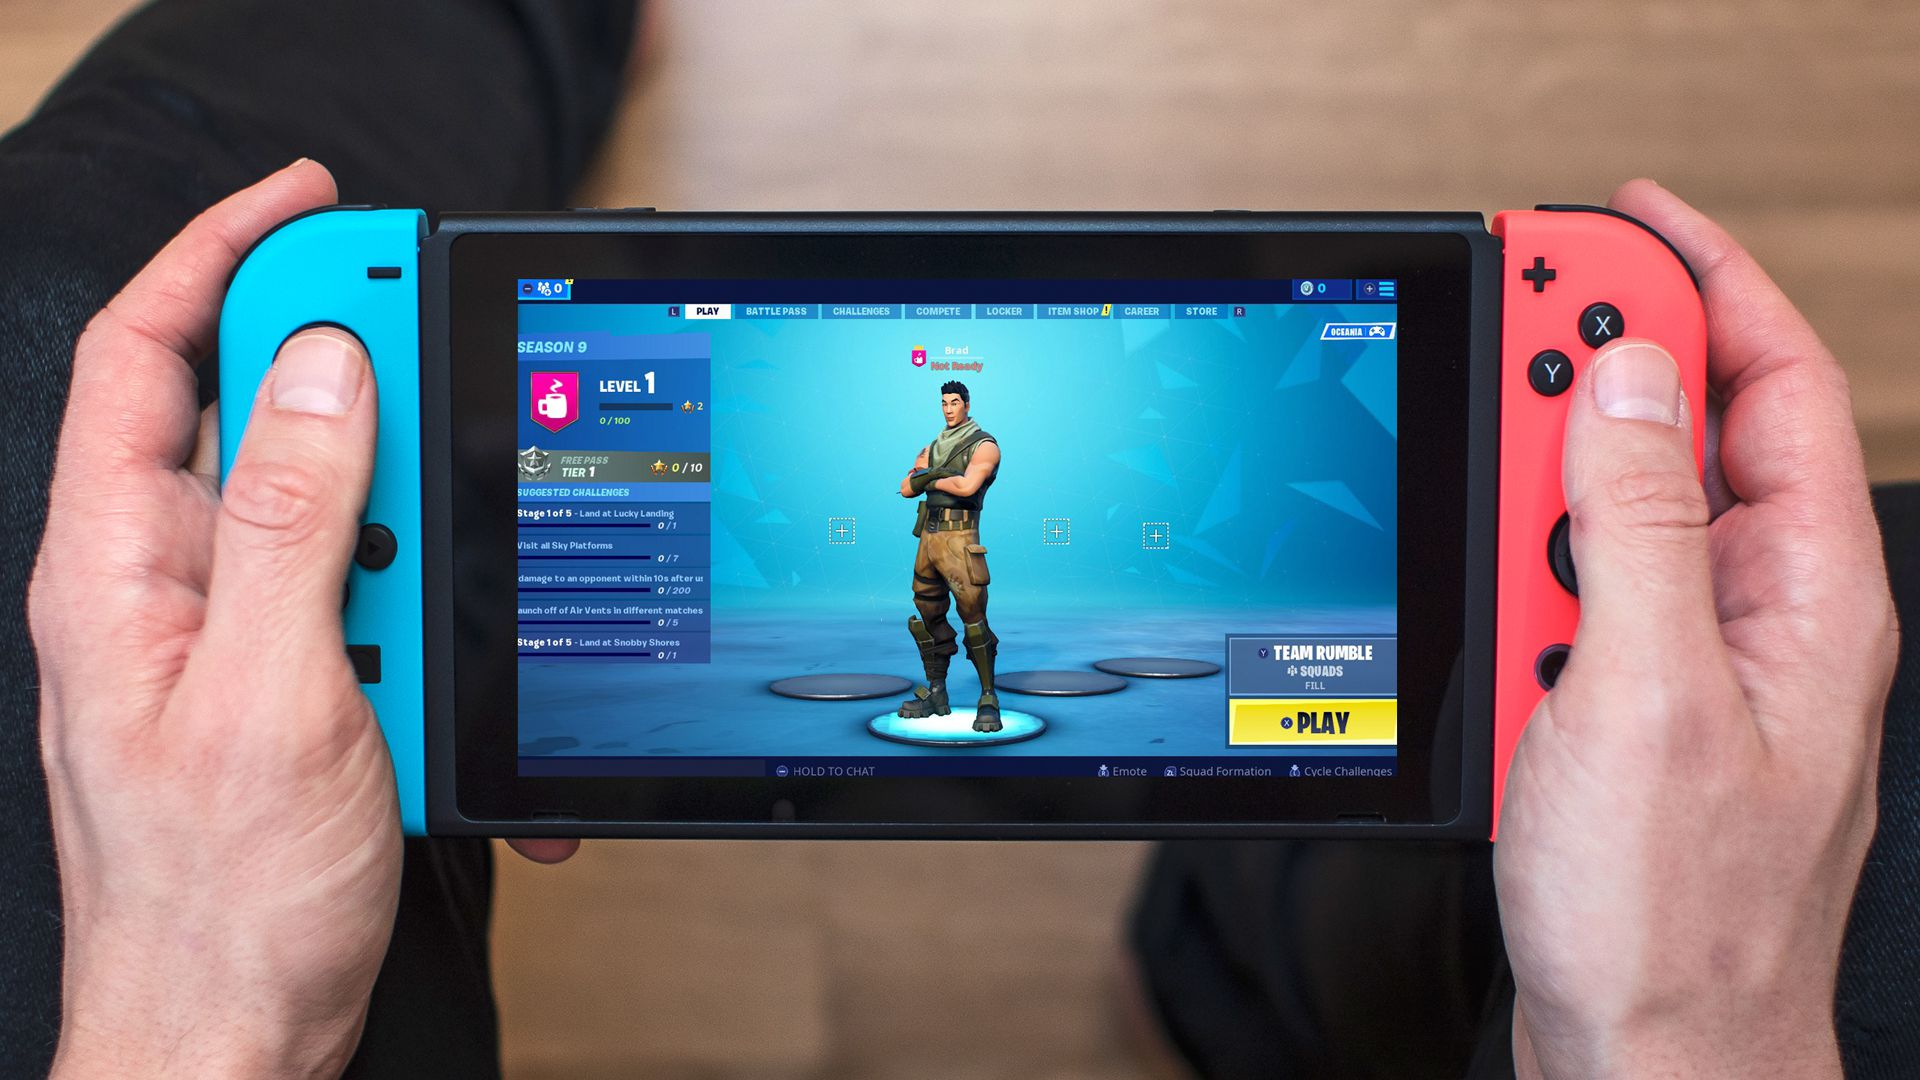 How to Get Fortnite on Nintendo Switch - How to Get Fortnite on Nintendo Switch <p>Download How to Get Fortnite on Nintendo Switch for FREE How to Download and Play Fortnite on Nintendo Switch Get Fortnite hacks for free on freecheatsforgames.com</p> - Free Cheats for Games